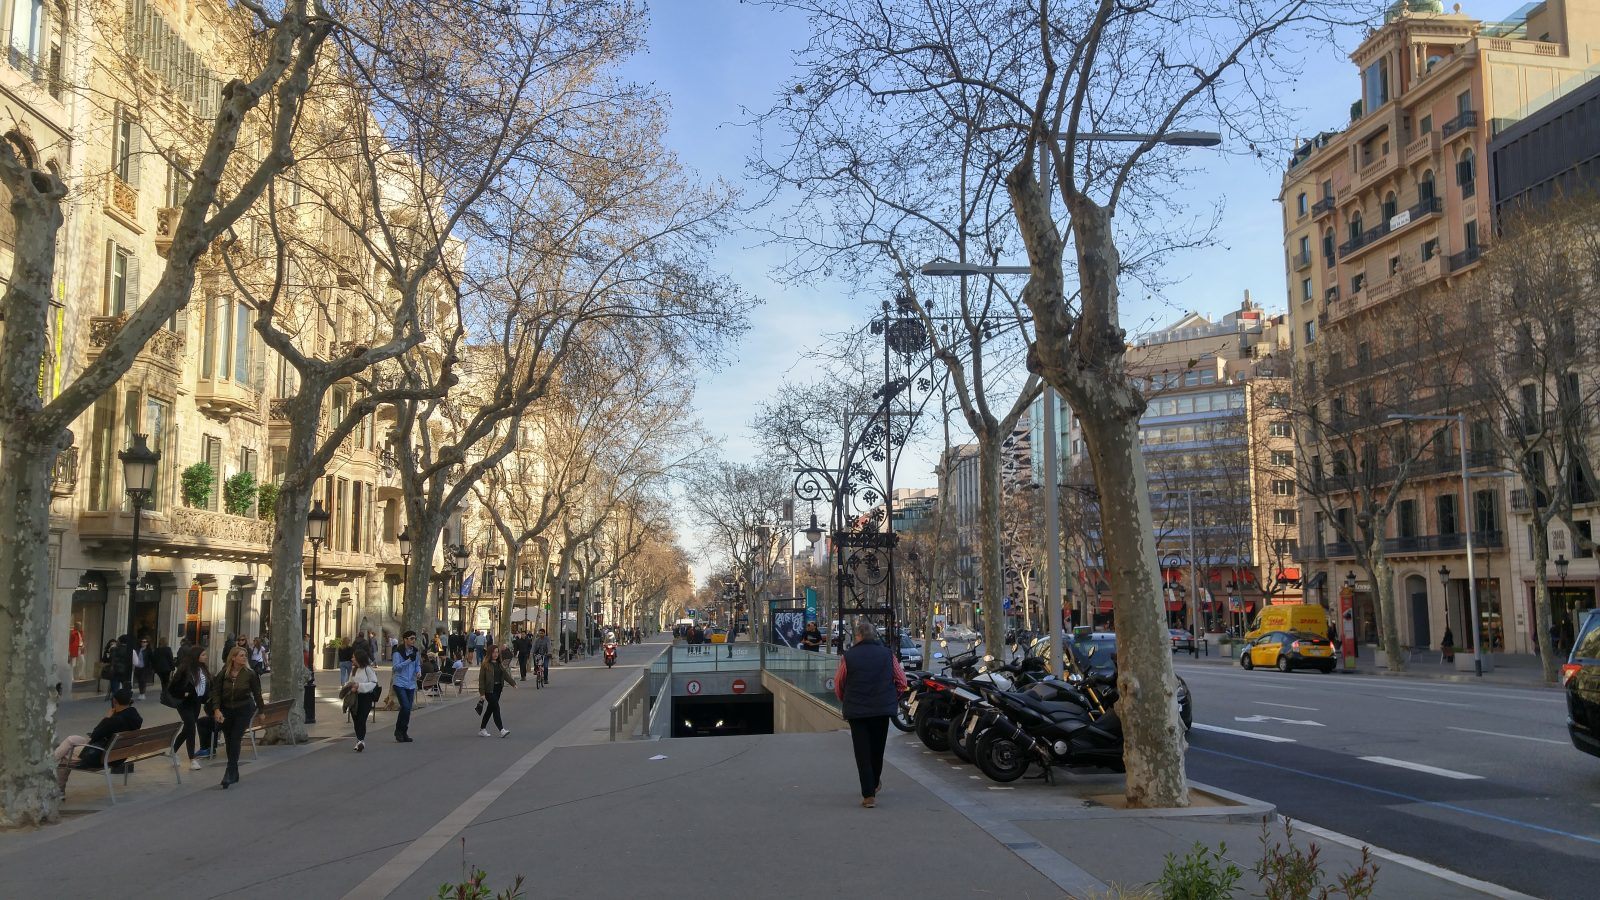 A street in Barcelona, Spain